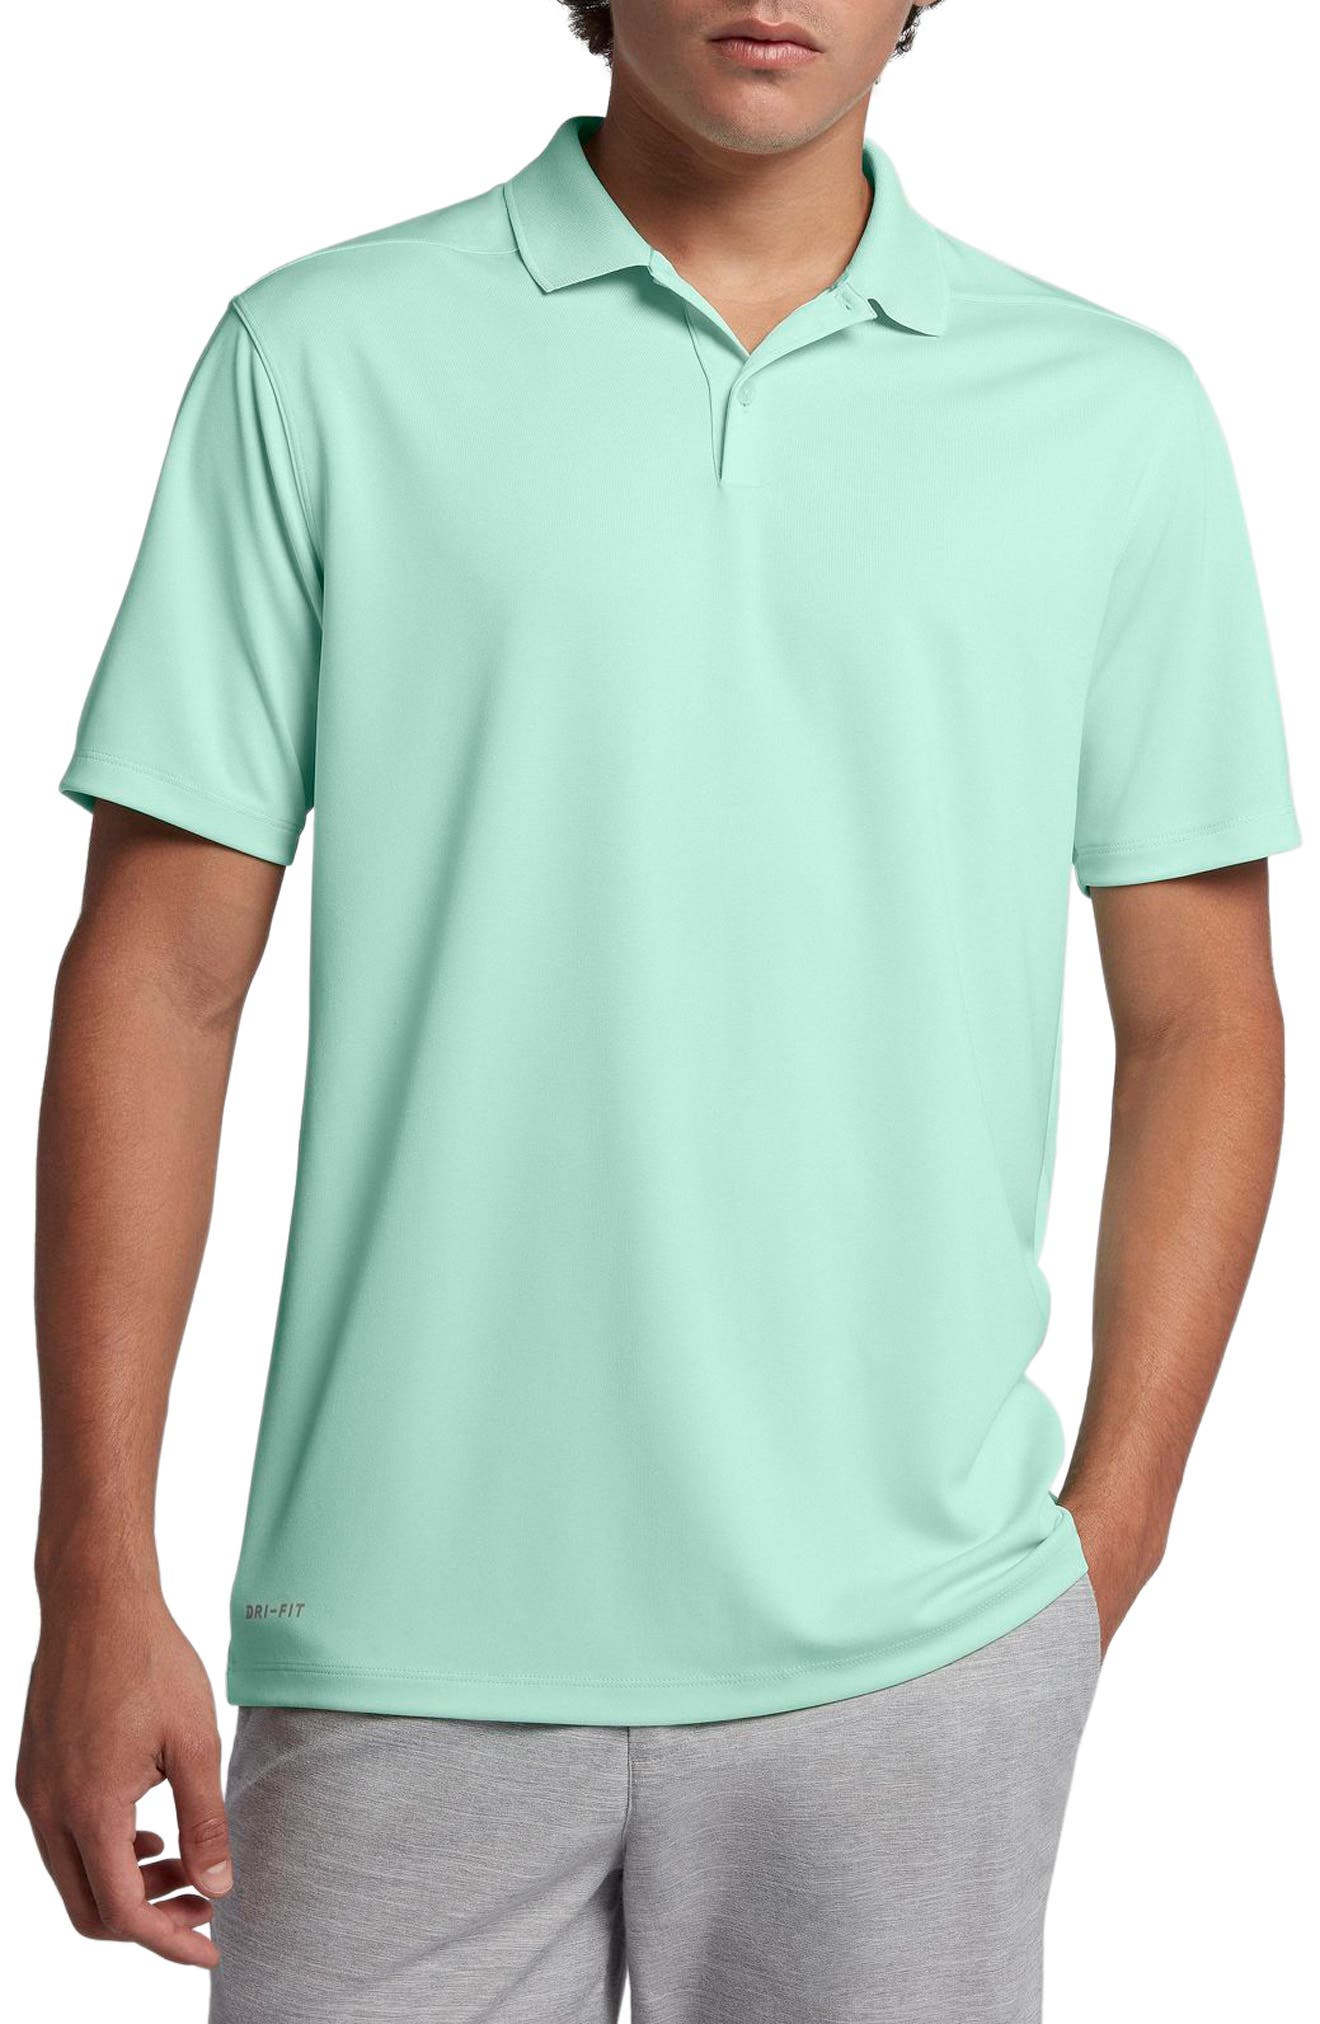 Dry Victory Golf Polo,                             Main thumbnail 1, color,                             IGLOO/ FLT SILVER